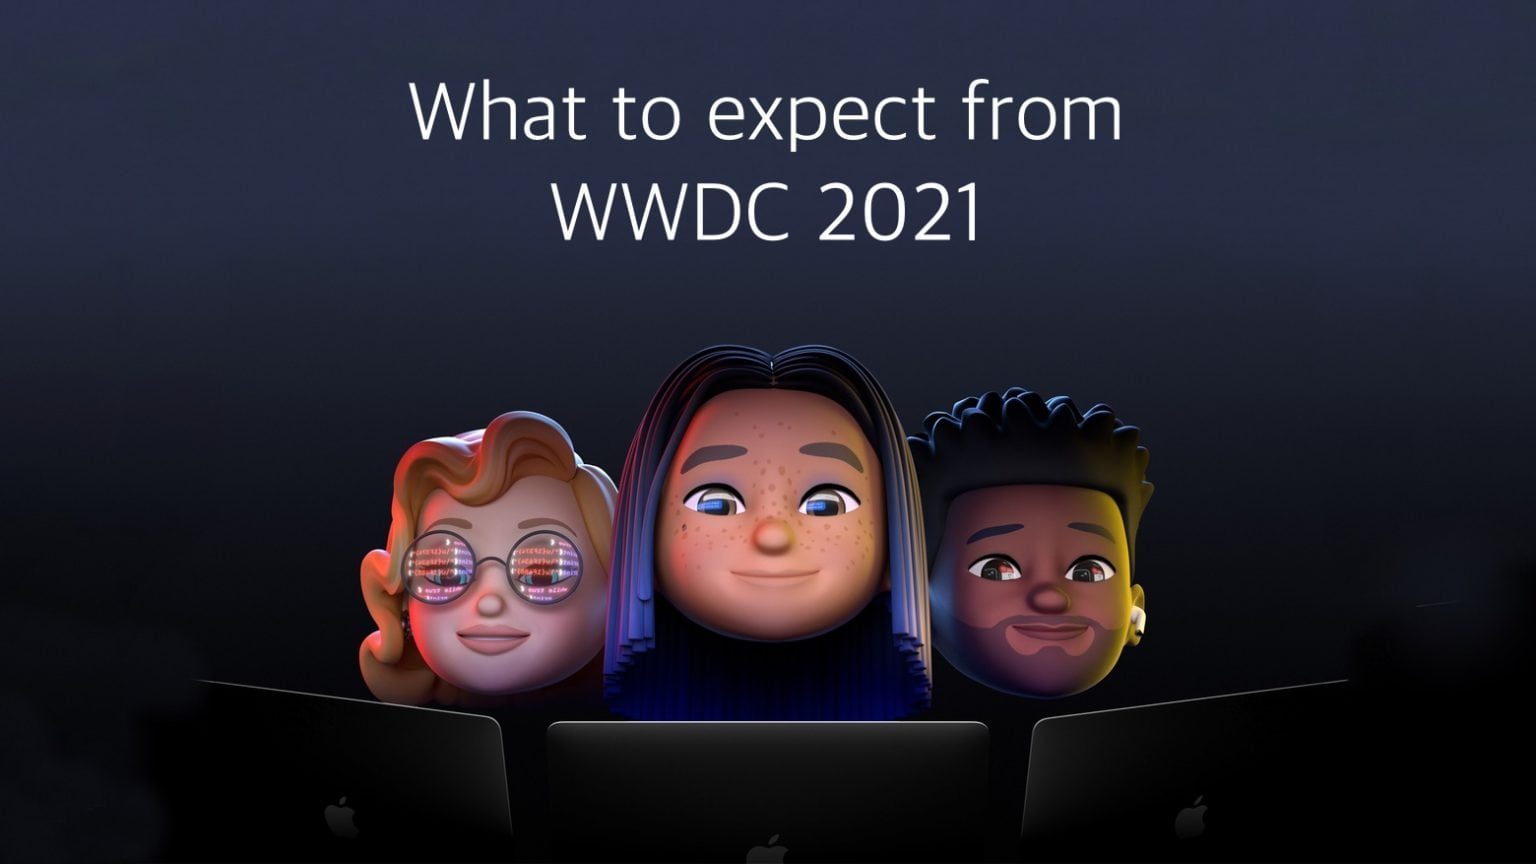 What to expect at WWDC 2021: iOS 15, macOS 12, new MacBook models, and more.